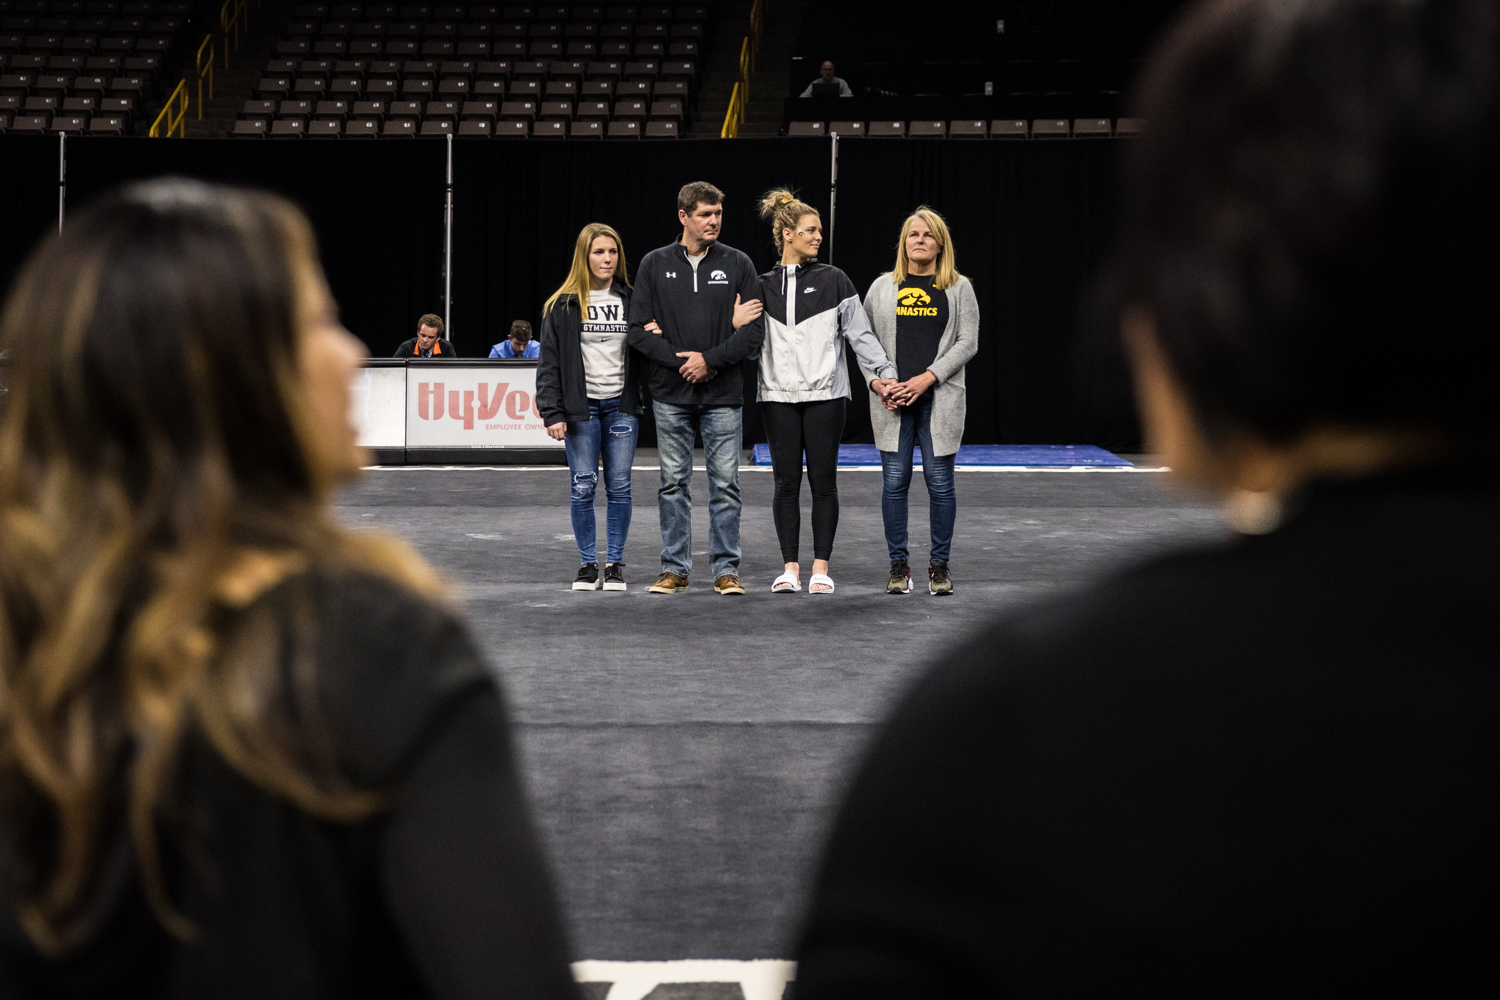 Iowa%27s+Sydney+Hogan+is+honored+with+her+family+after+a+women%27s+gymnastics+meet+between+Iowa+and+Iowa+State+at+Carver-Hawkeye+Arena+on+Friday%2C+March+1%2C+2019.+The+Hawkeyes%2C+celebrating+senior+night%2C+fell+to+the+Cyclones%2C+196.275-196.250.